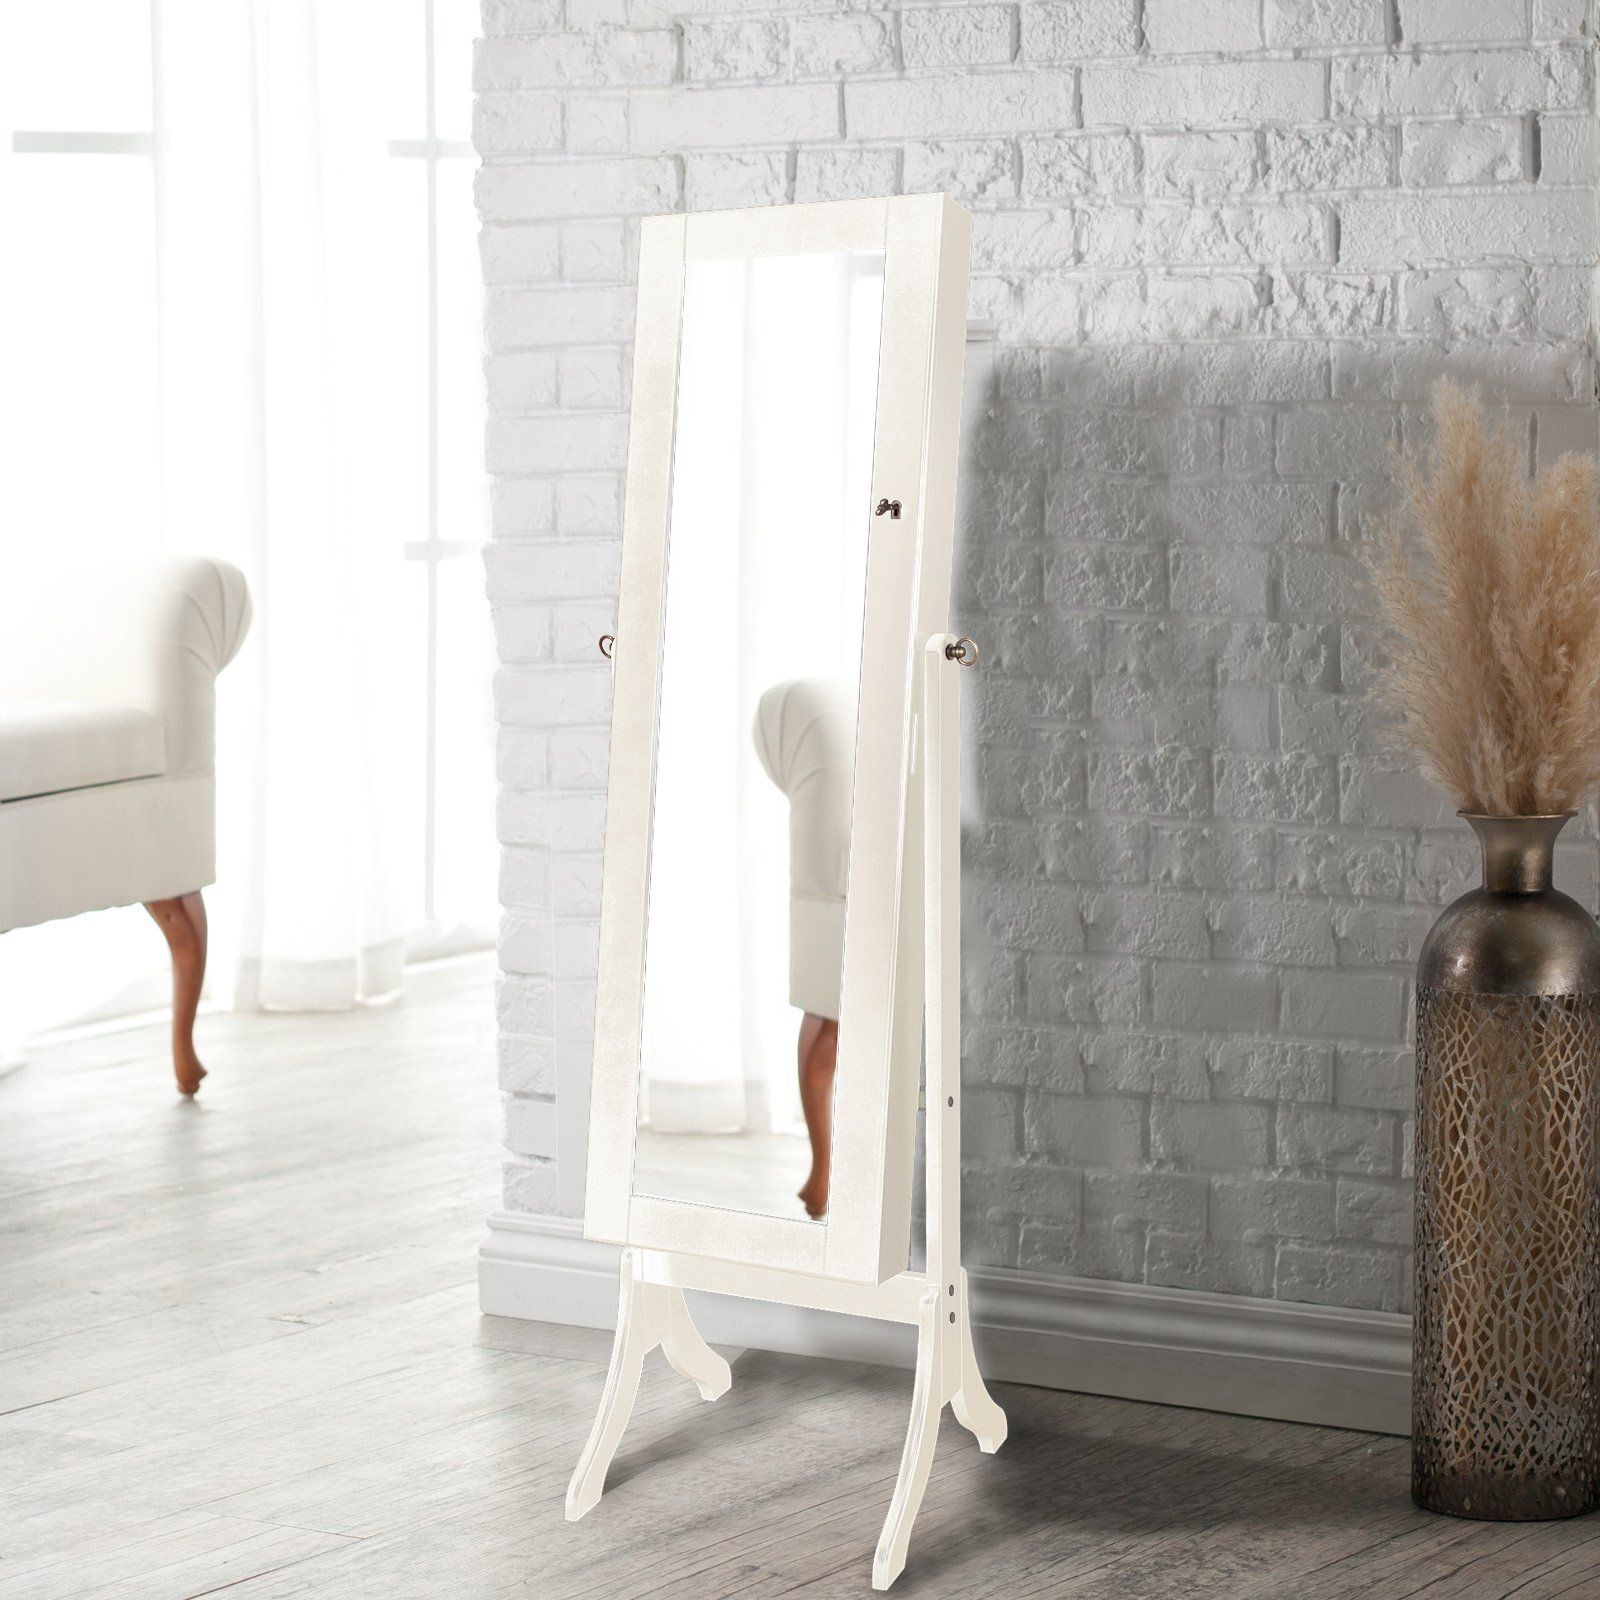 Lux Home Standing Jewelry Armoire with Mirror (Ivory)